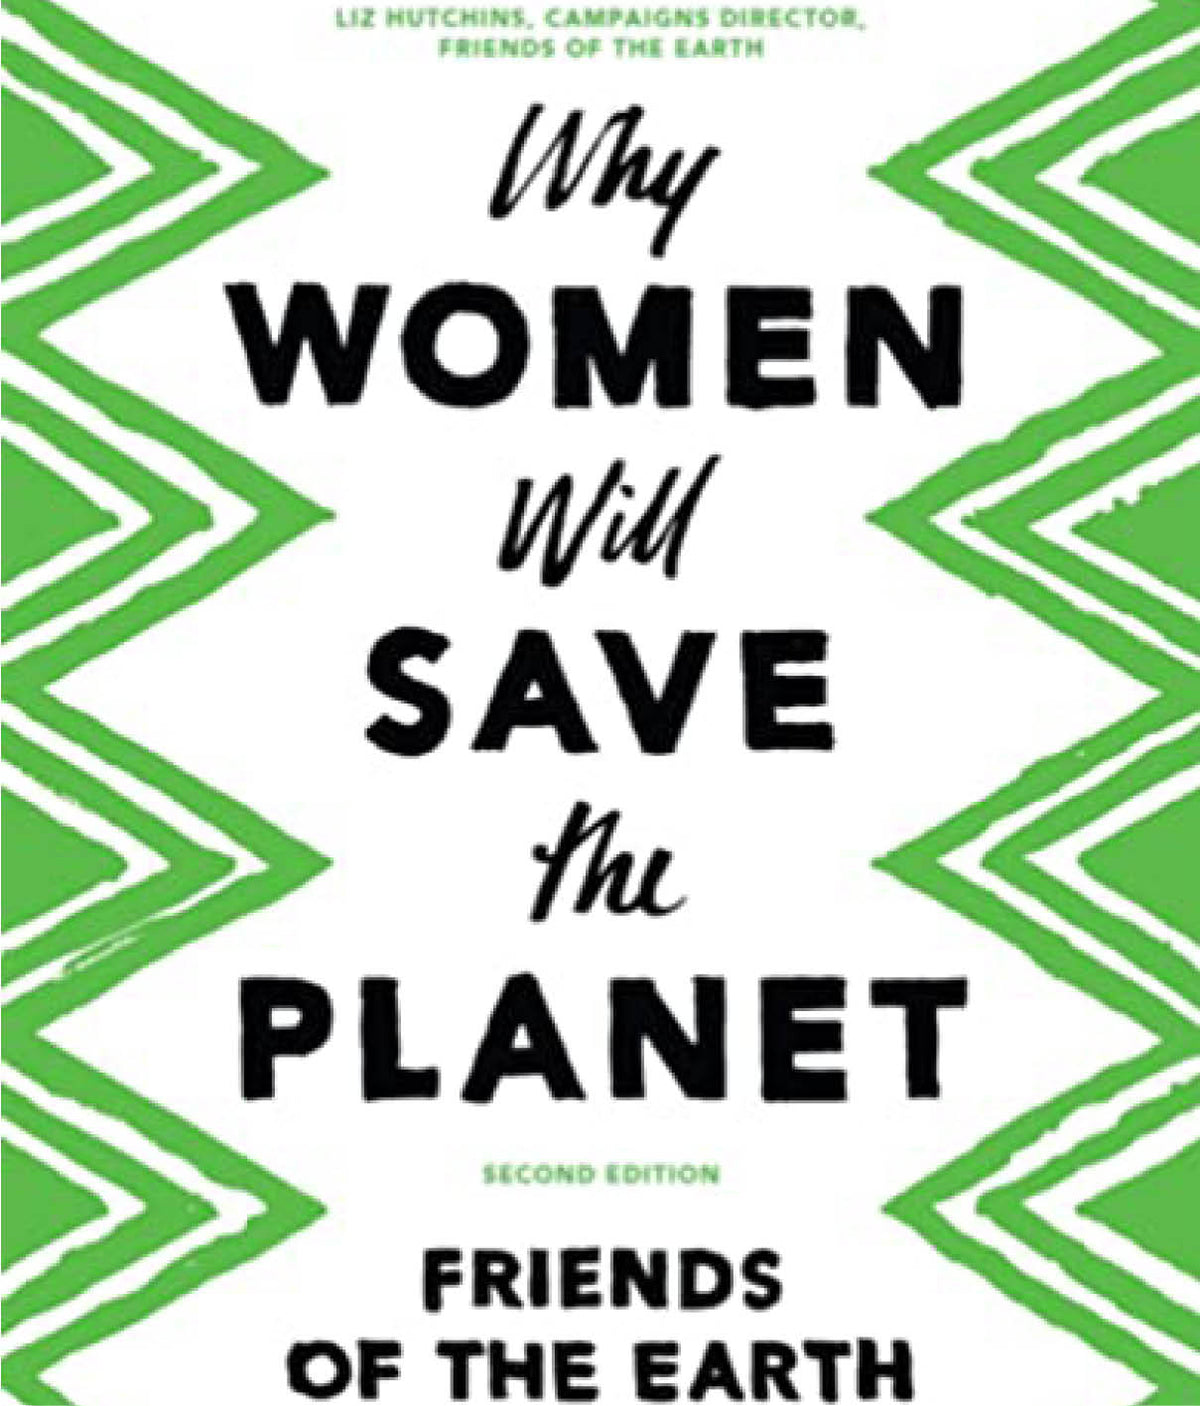 Why Women Will Save the Planet by Friends of the Earth and C40 Cities